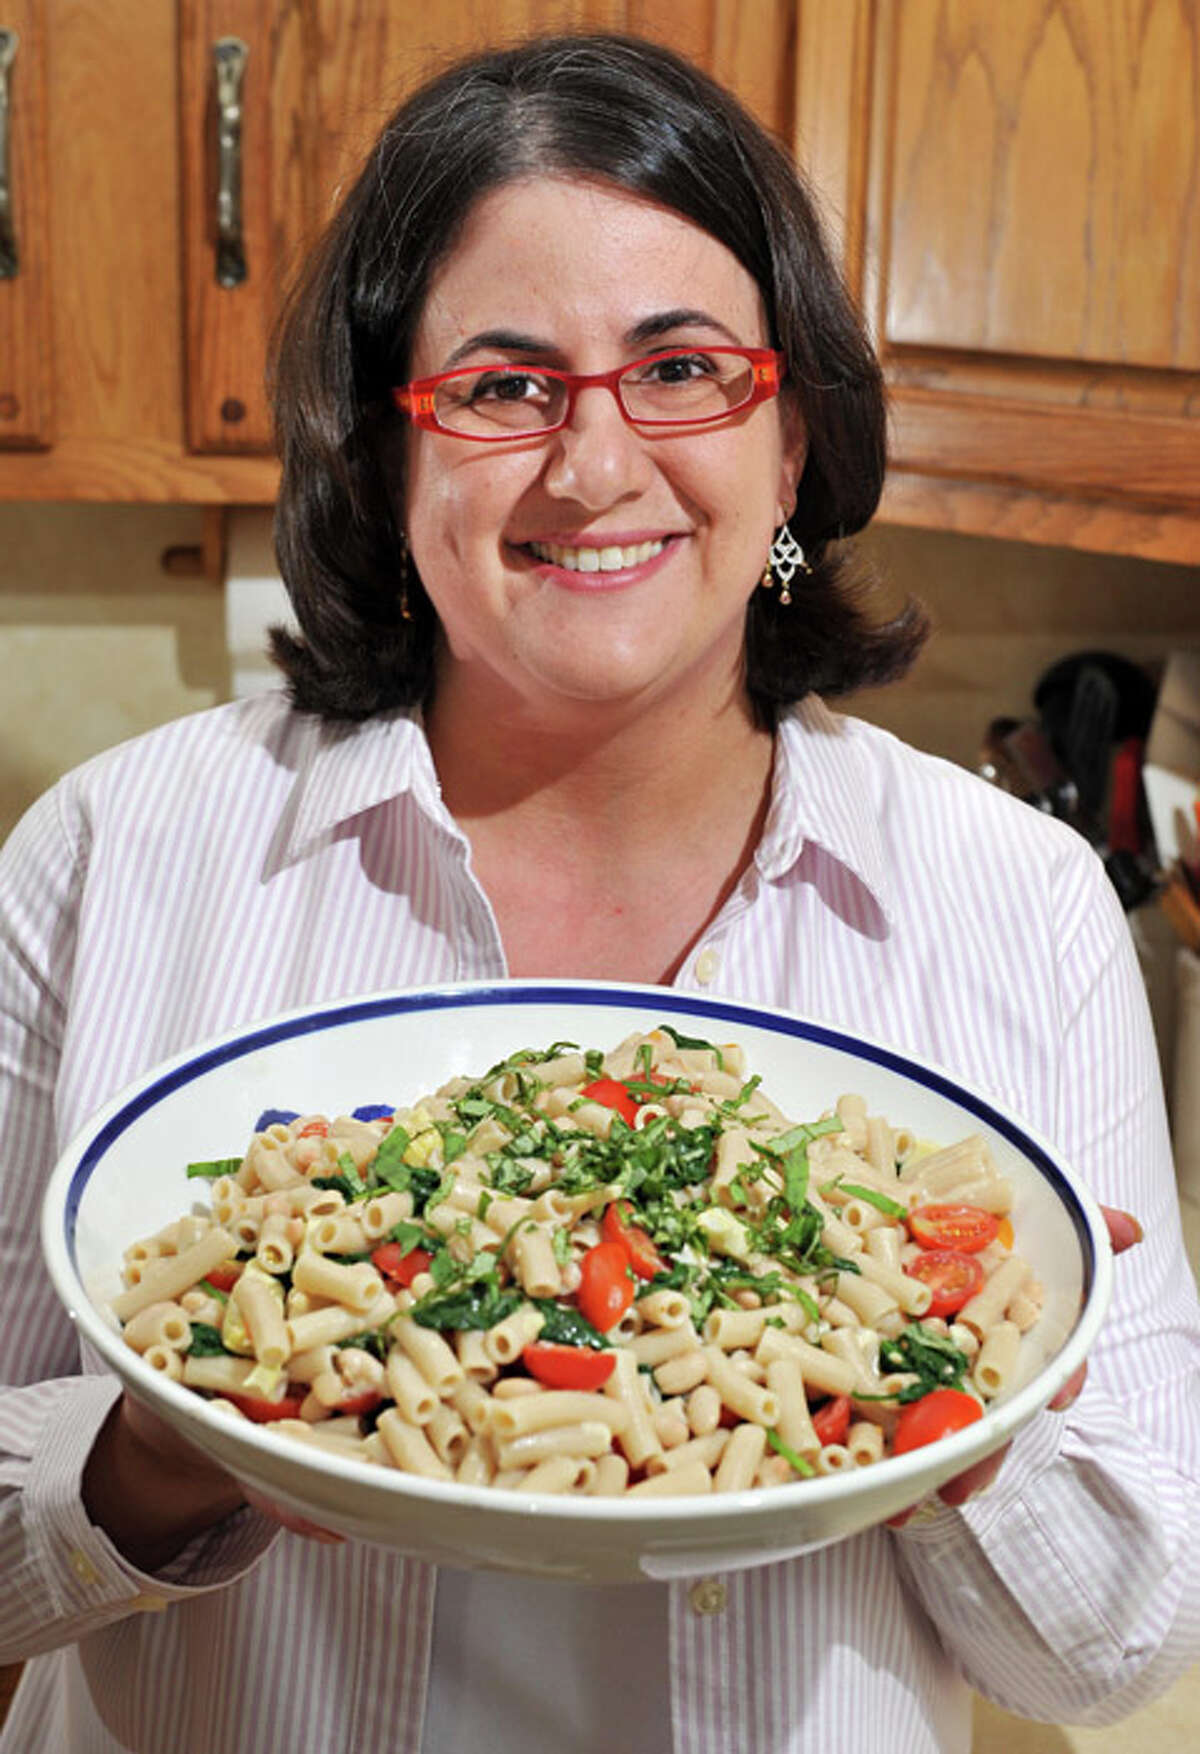 Elizabeth Barbone holds a bowl of her gluten-free garlic pasta in her kitchen.